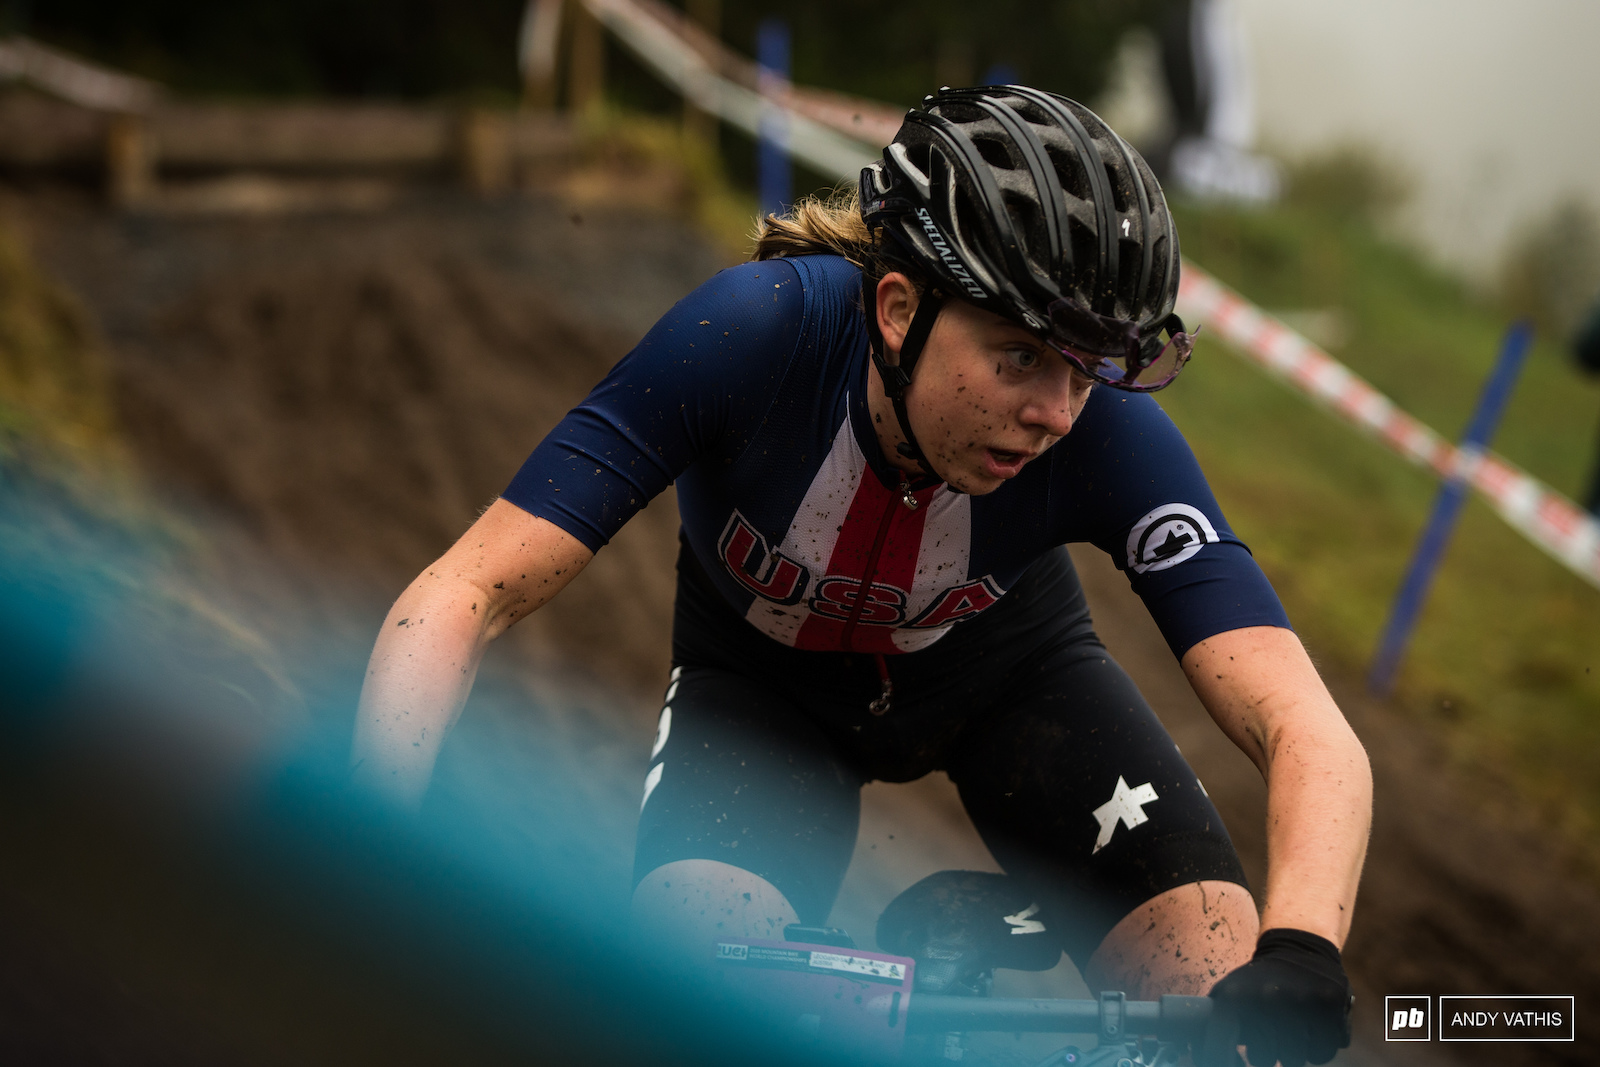 Haley Batten finally finished her day in fourth but not before flirting with podium positions earlier in the race.